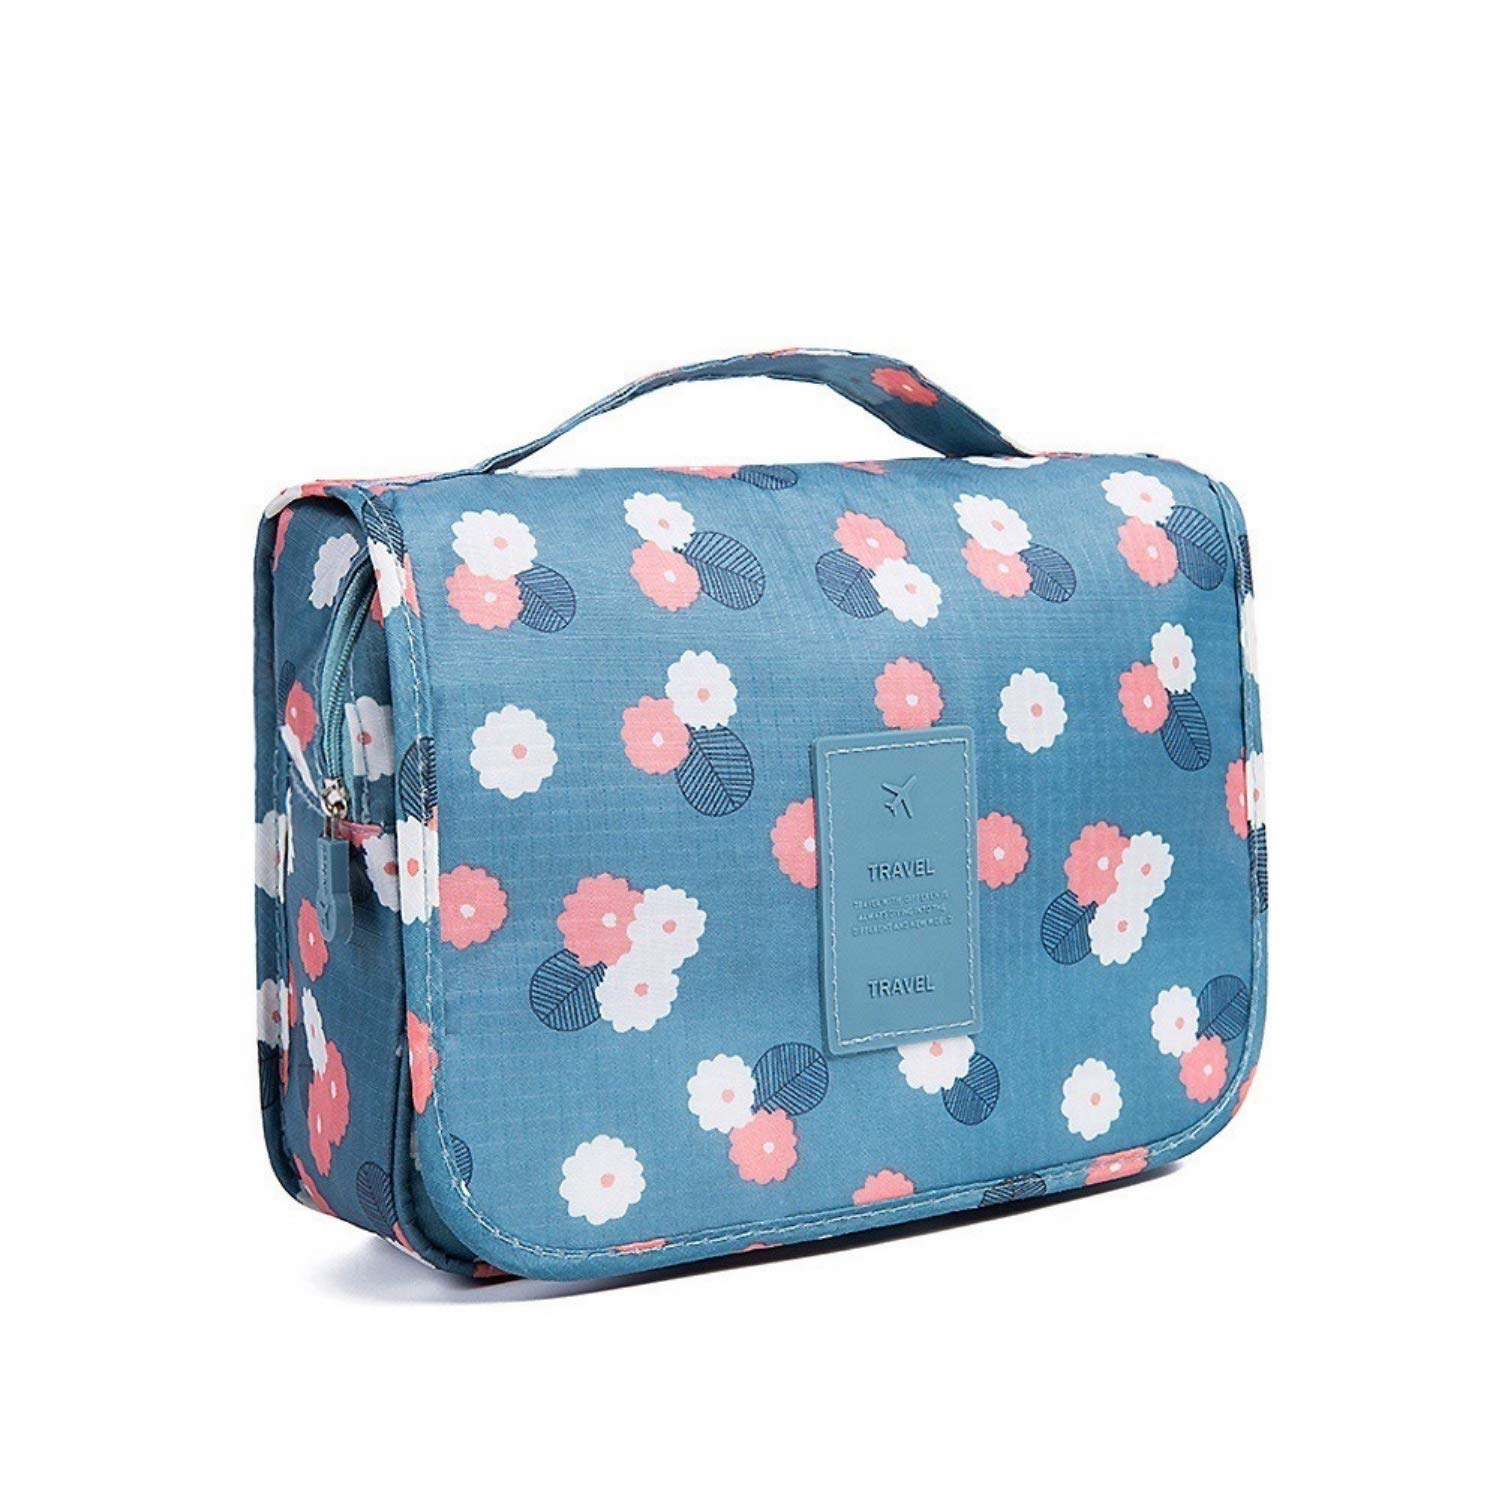 LalaTravel Toiletry Bag Makeup Hanging Travel Organizer, Pouch Set, Cosmetic Dopp Travel Kit TSA for Traveling Men and Women, Waterproof, Blue | Large Fit Many Toiletries LalaTravel Global